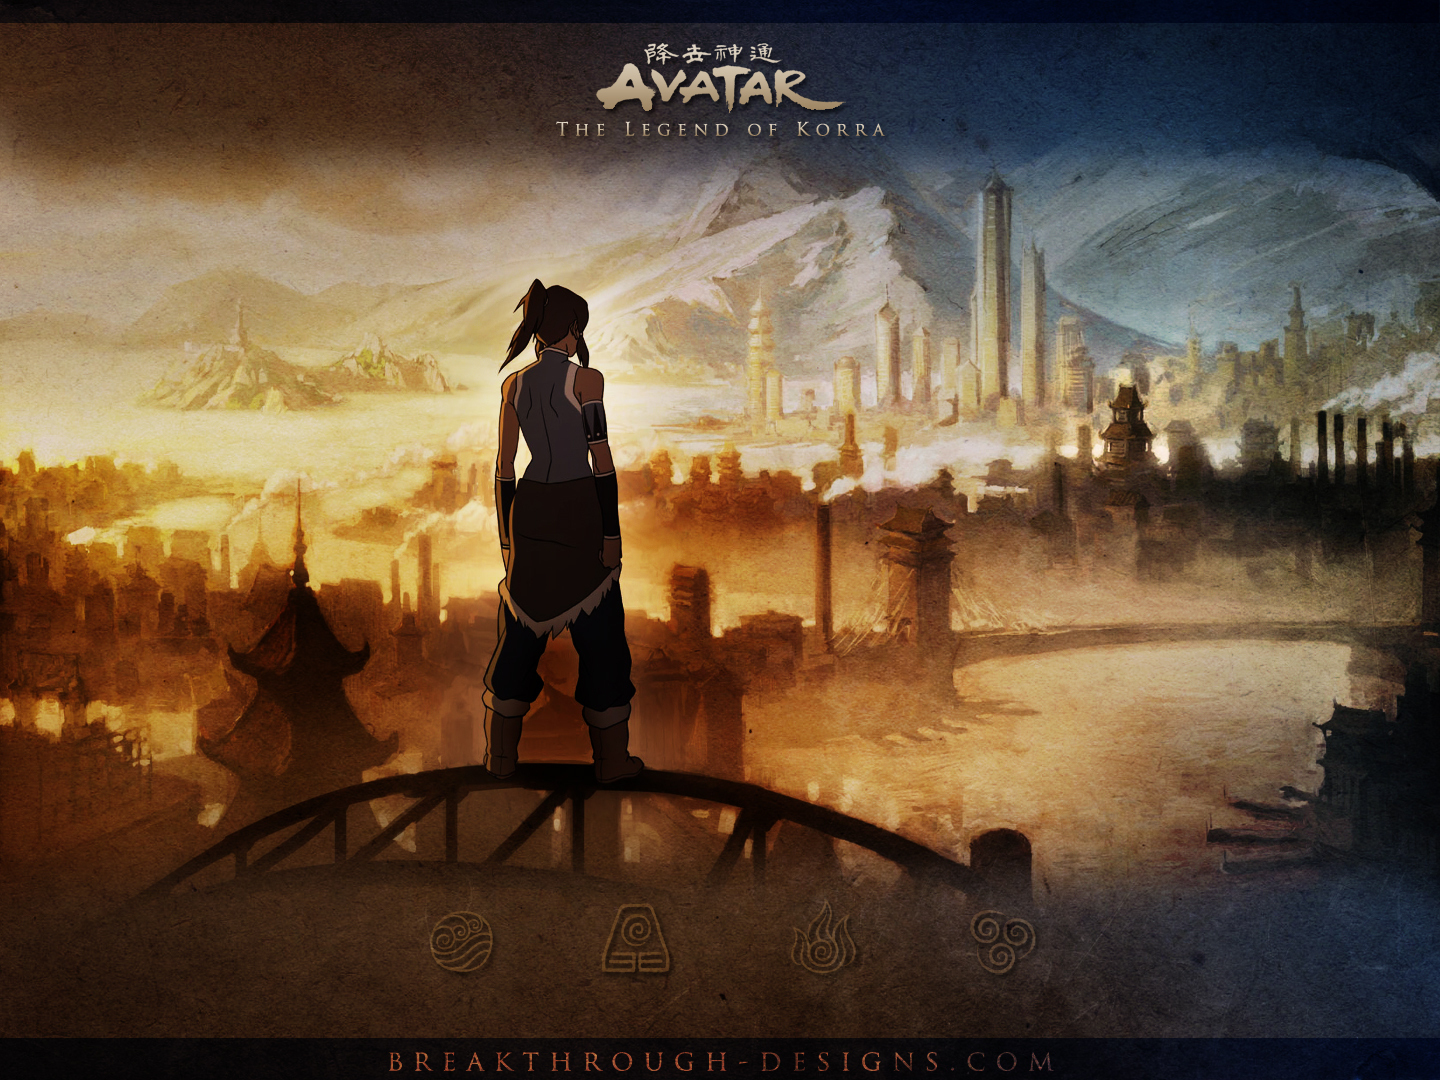 Elizabeth Poole: Avatar: The Last Airbender vs. Legend of Korra